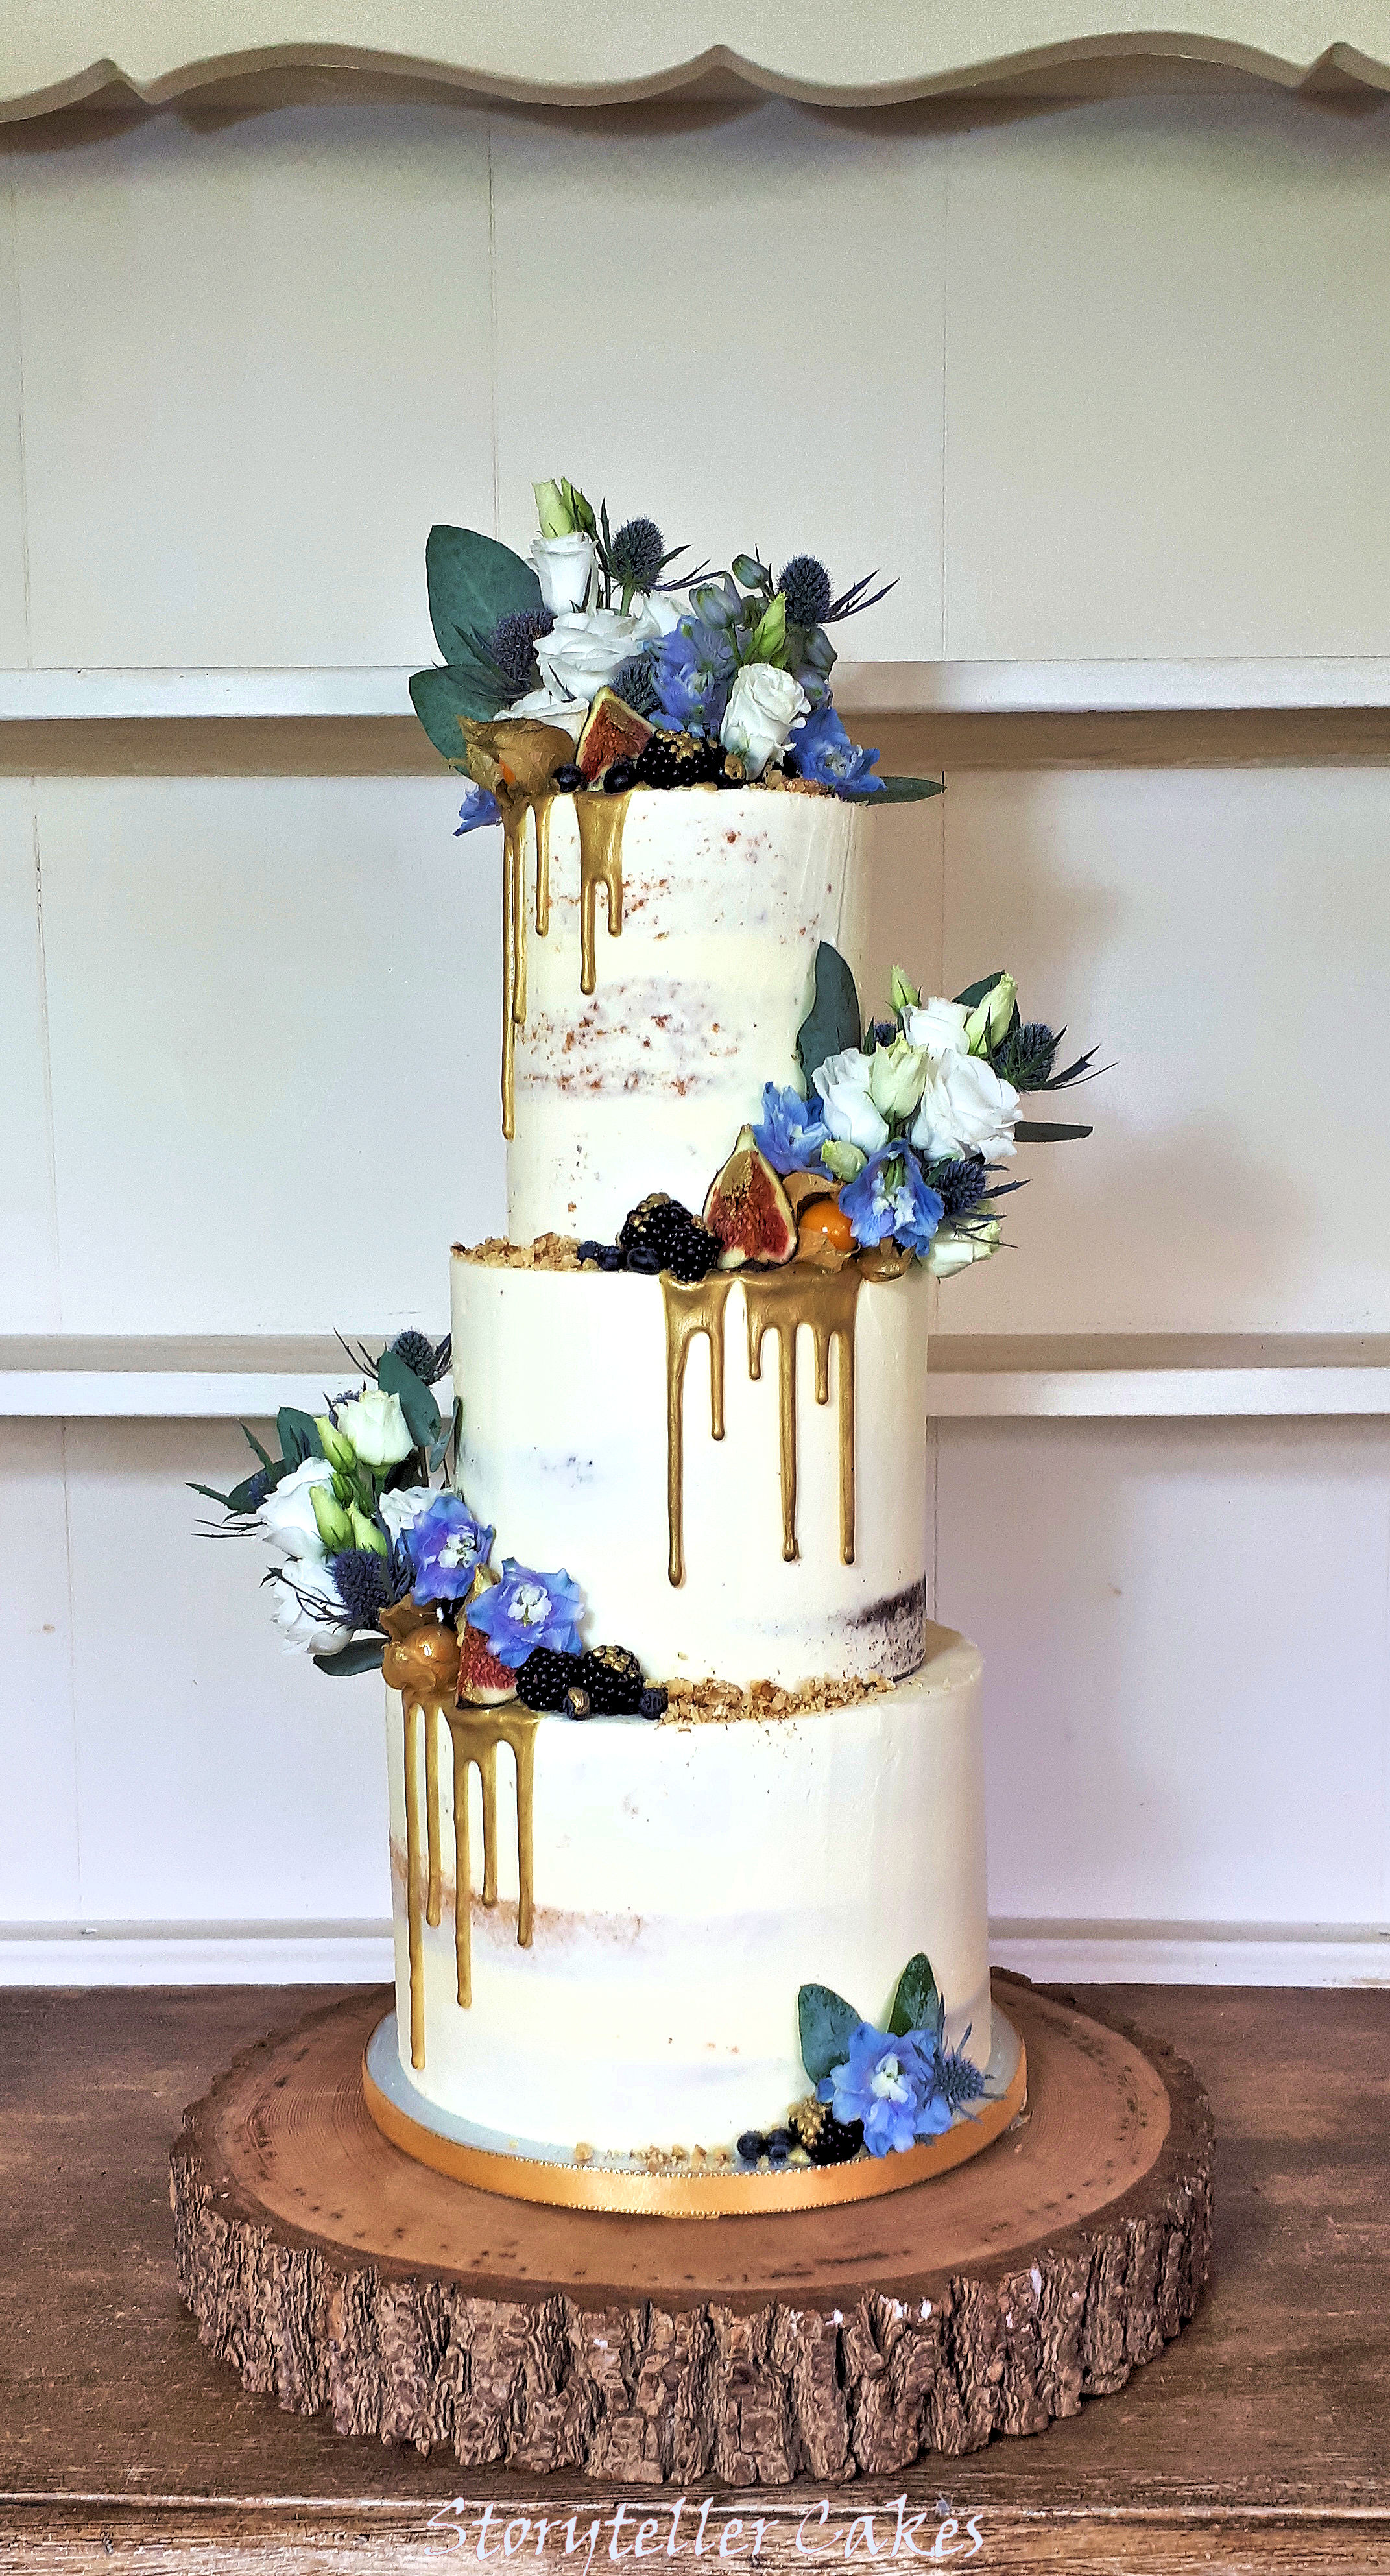 Semi Naked Wedding Cake with Blue and gold thisltes and fruit4.jpg